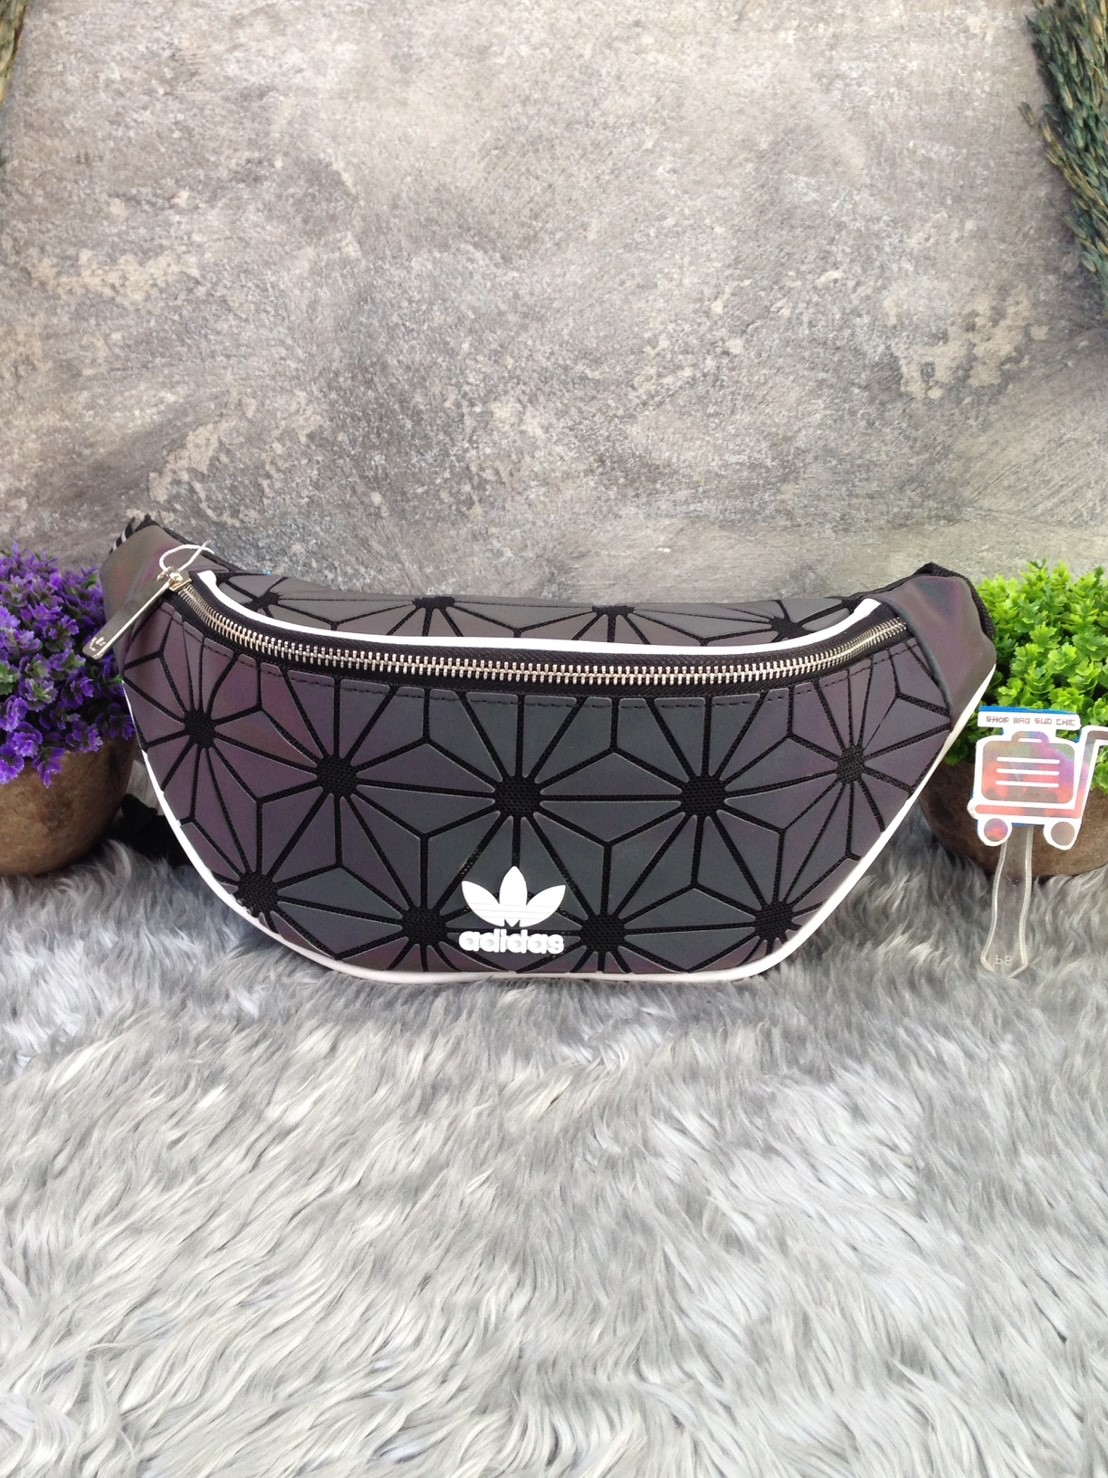 ac9bd3fe8365 Adidas Originals 3D Mini Airline - SHoP SUD CHiC   Inspired by ...